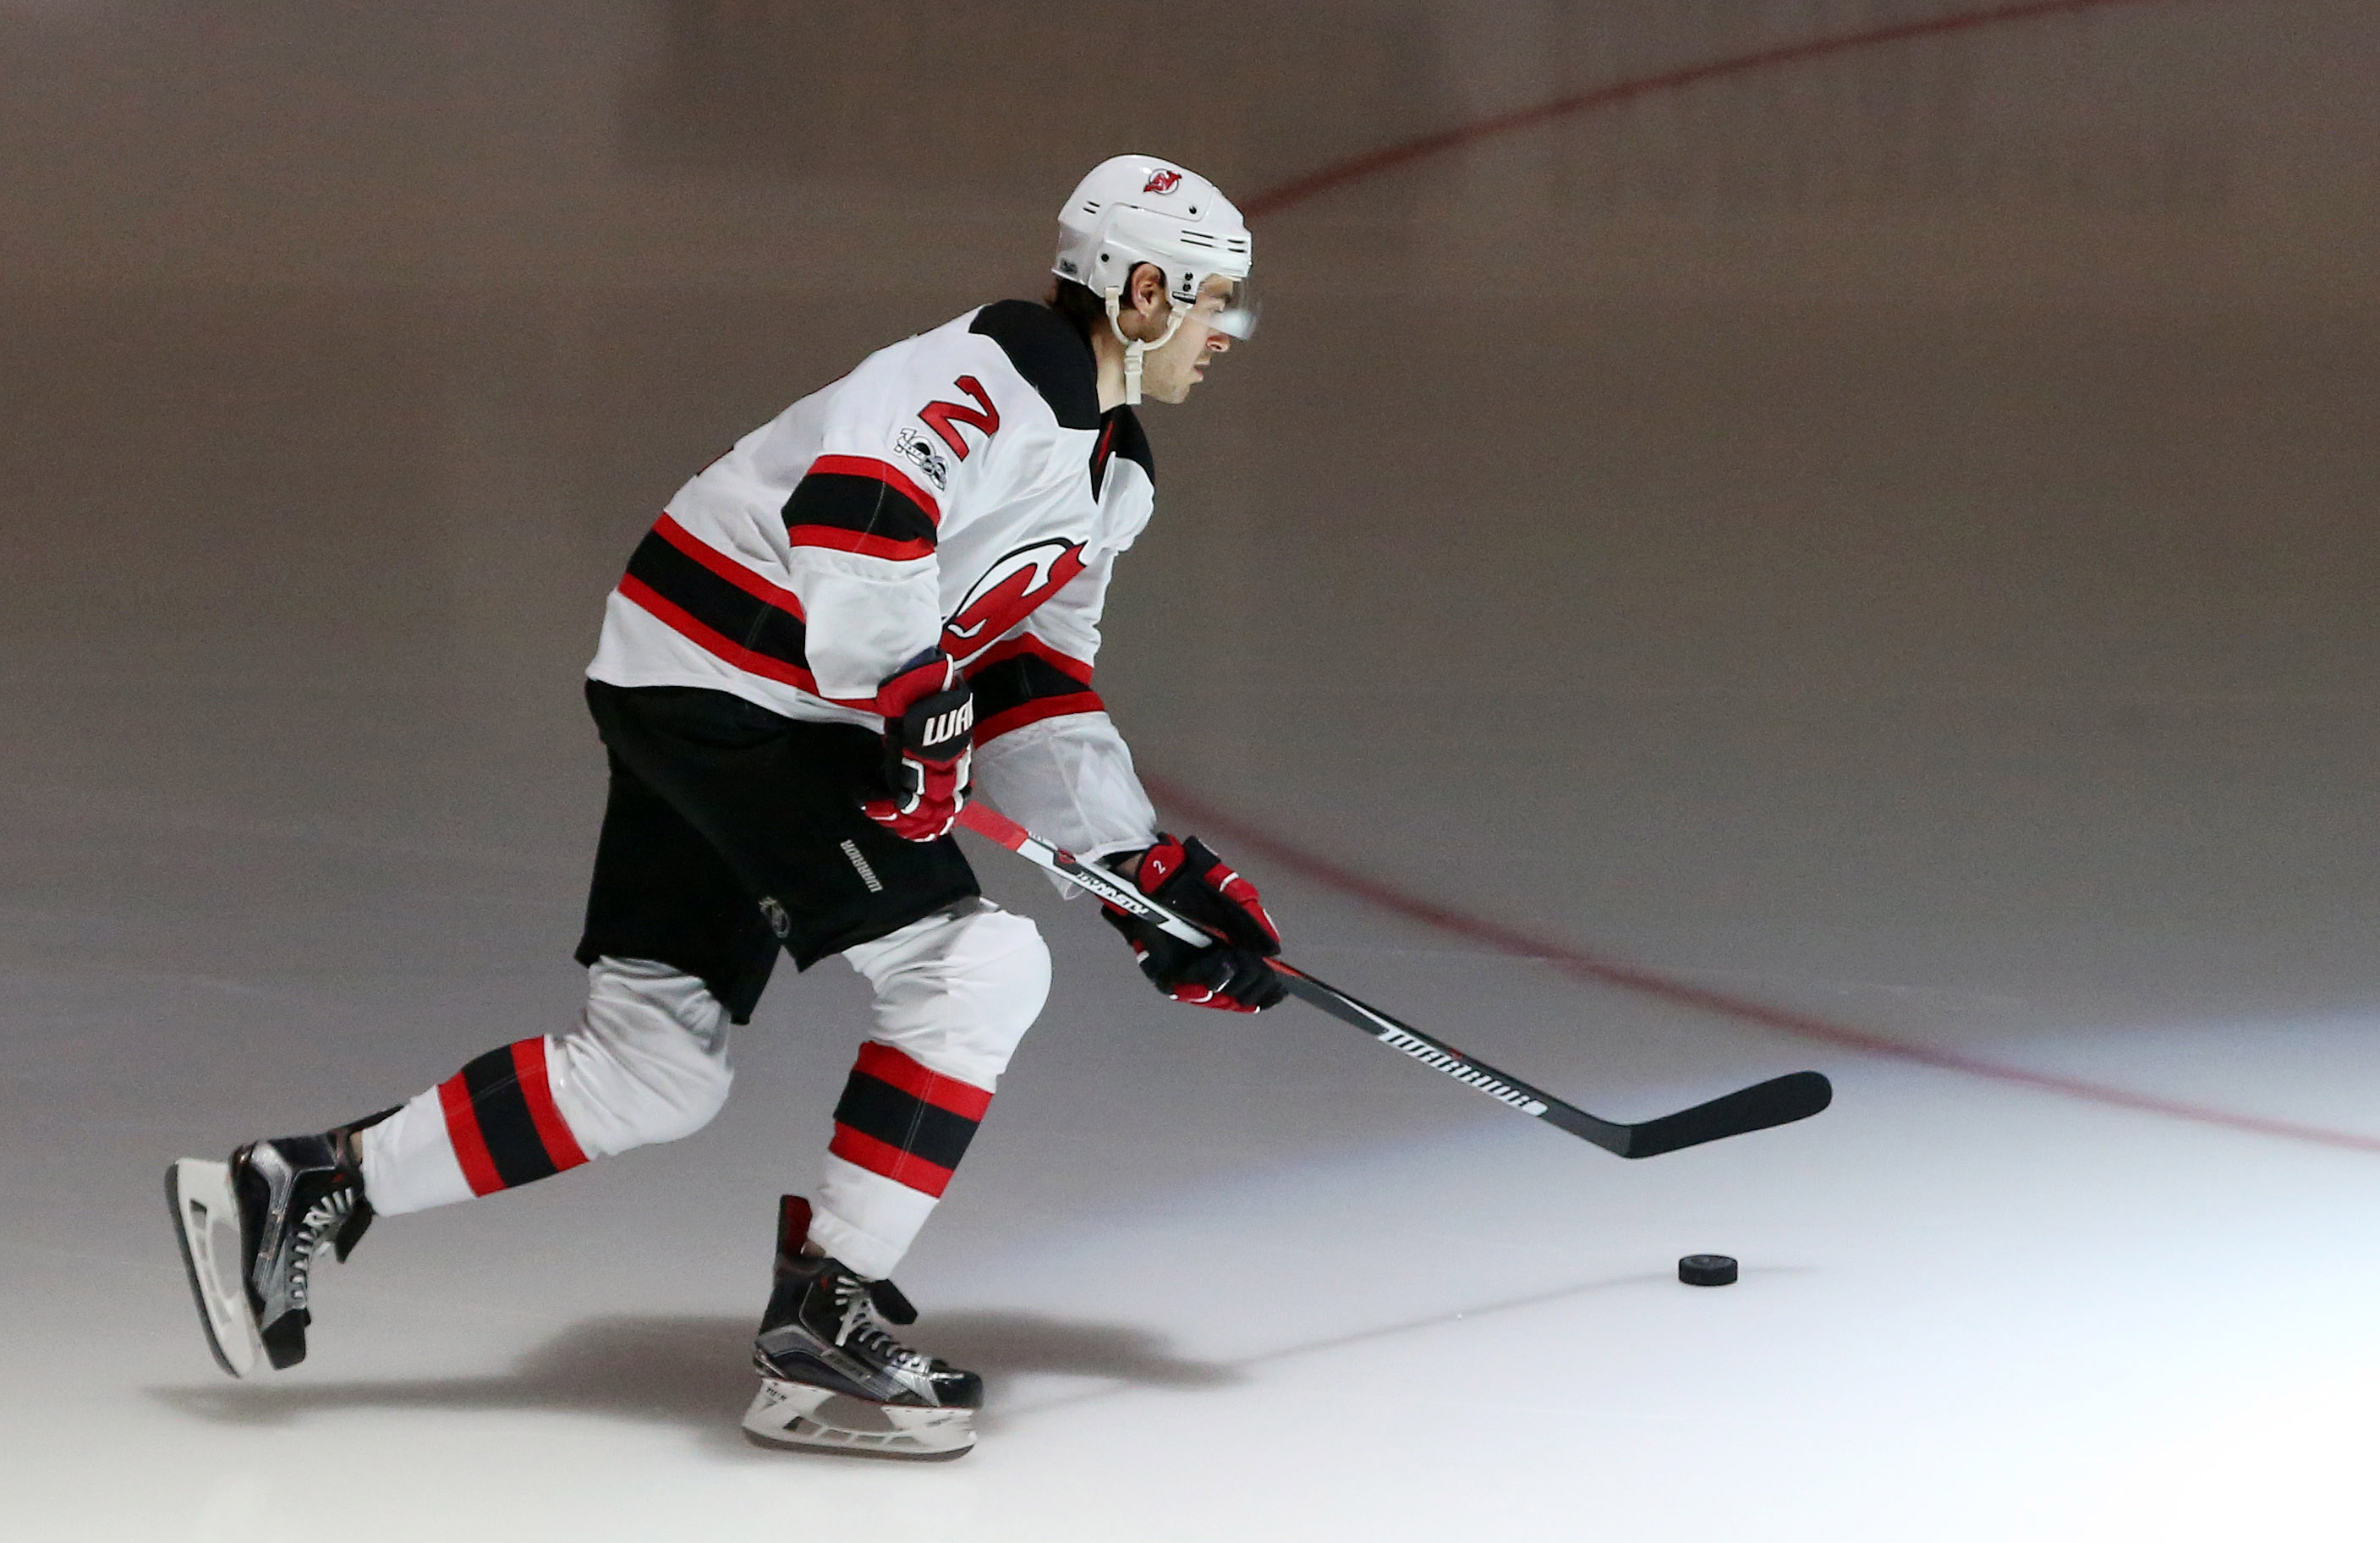 9950836-nhl-new-jersey-devils-at-pittsburgh-penguins